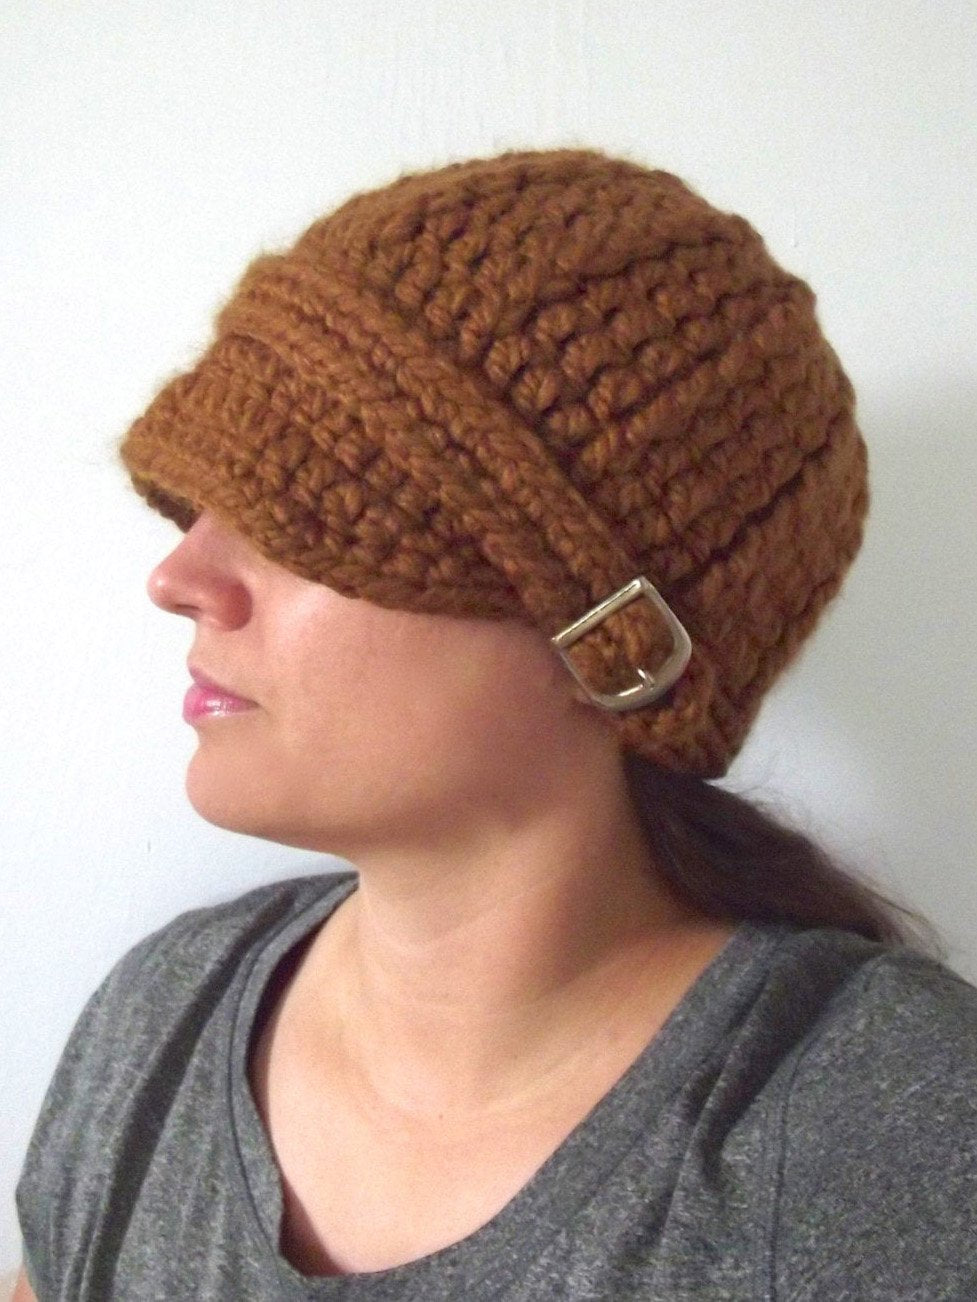 Hazelnut buckle beanie winter hat by Two Seaside Babes